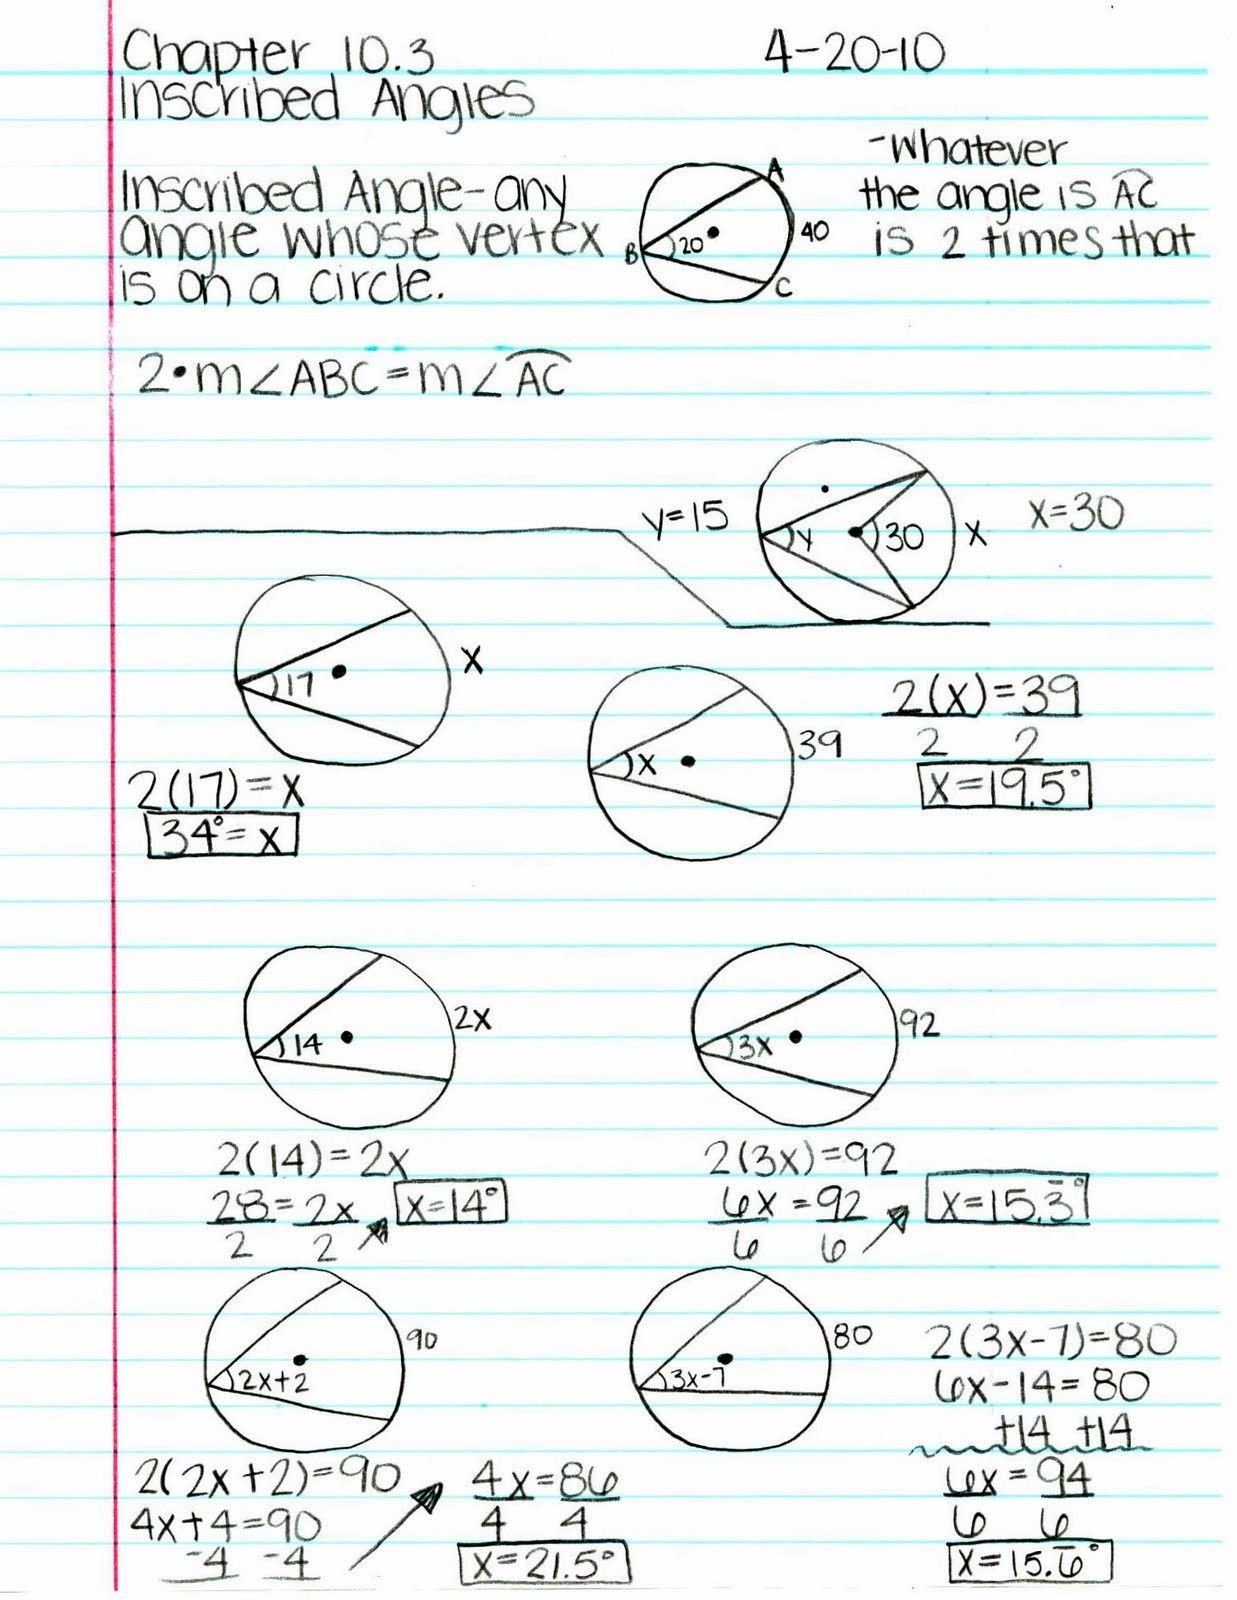 Inscribed Angles Worksheet  Briefencounters And Inscribed Angles Worksheet